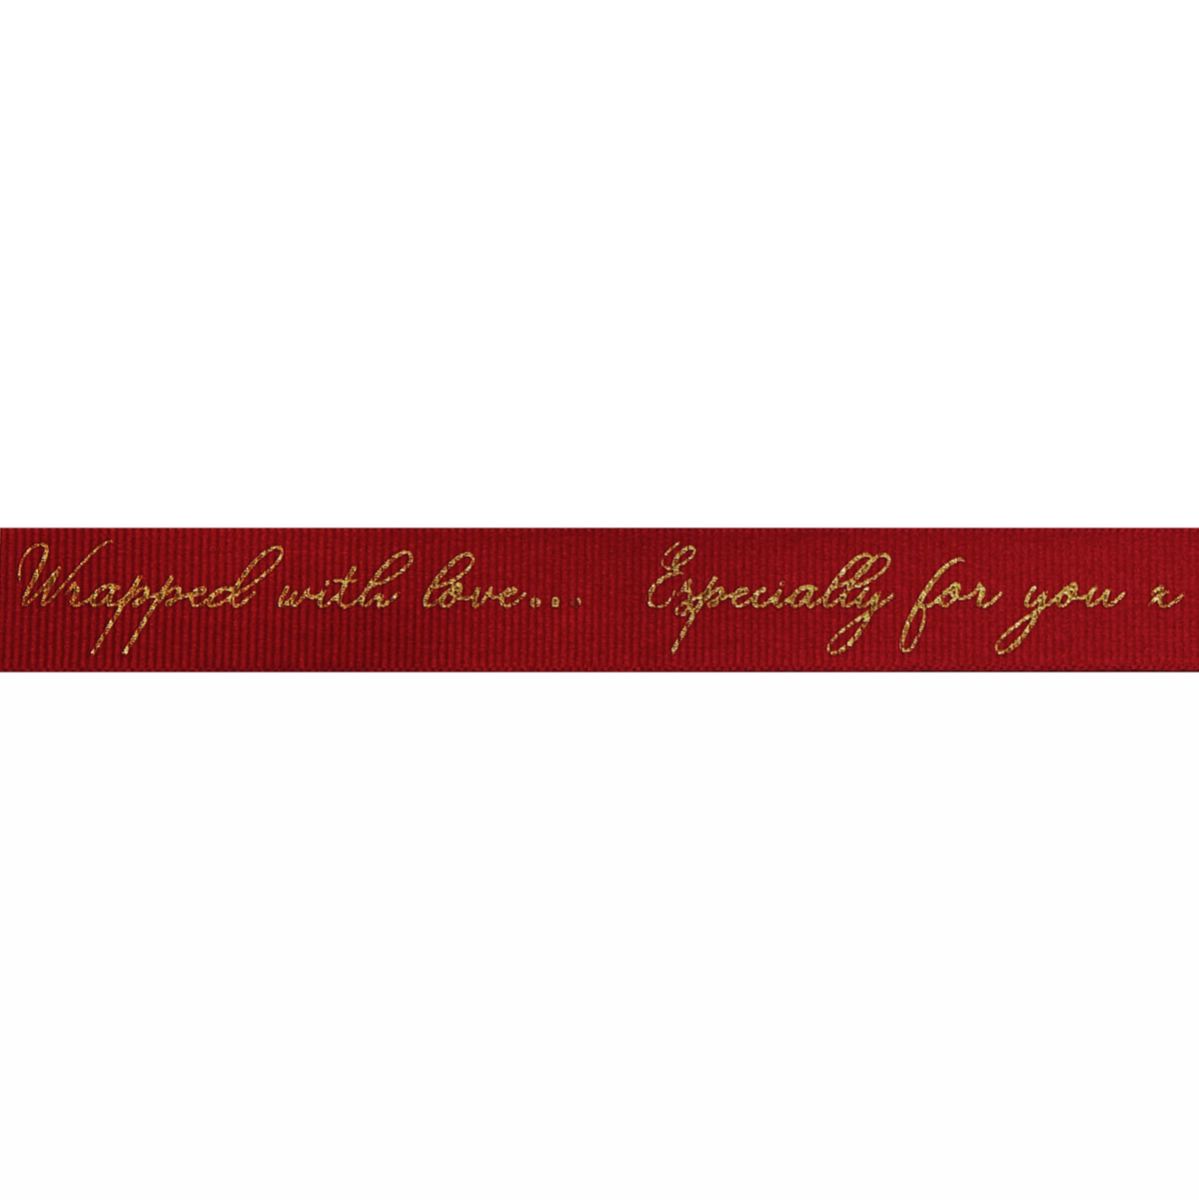 Berisfords Ribbon - Sparkle With Love - 16mm Wide - Cardinal / Gold